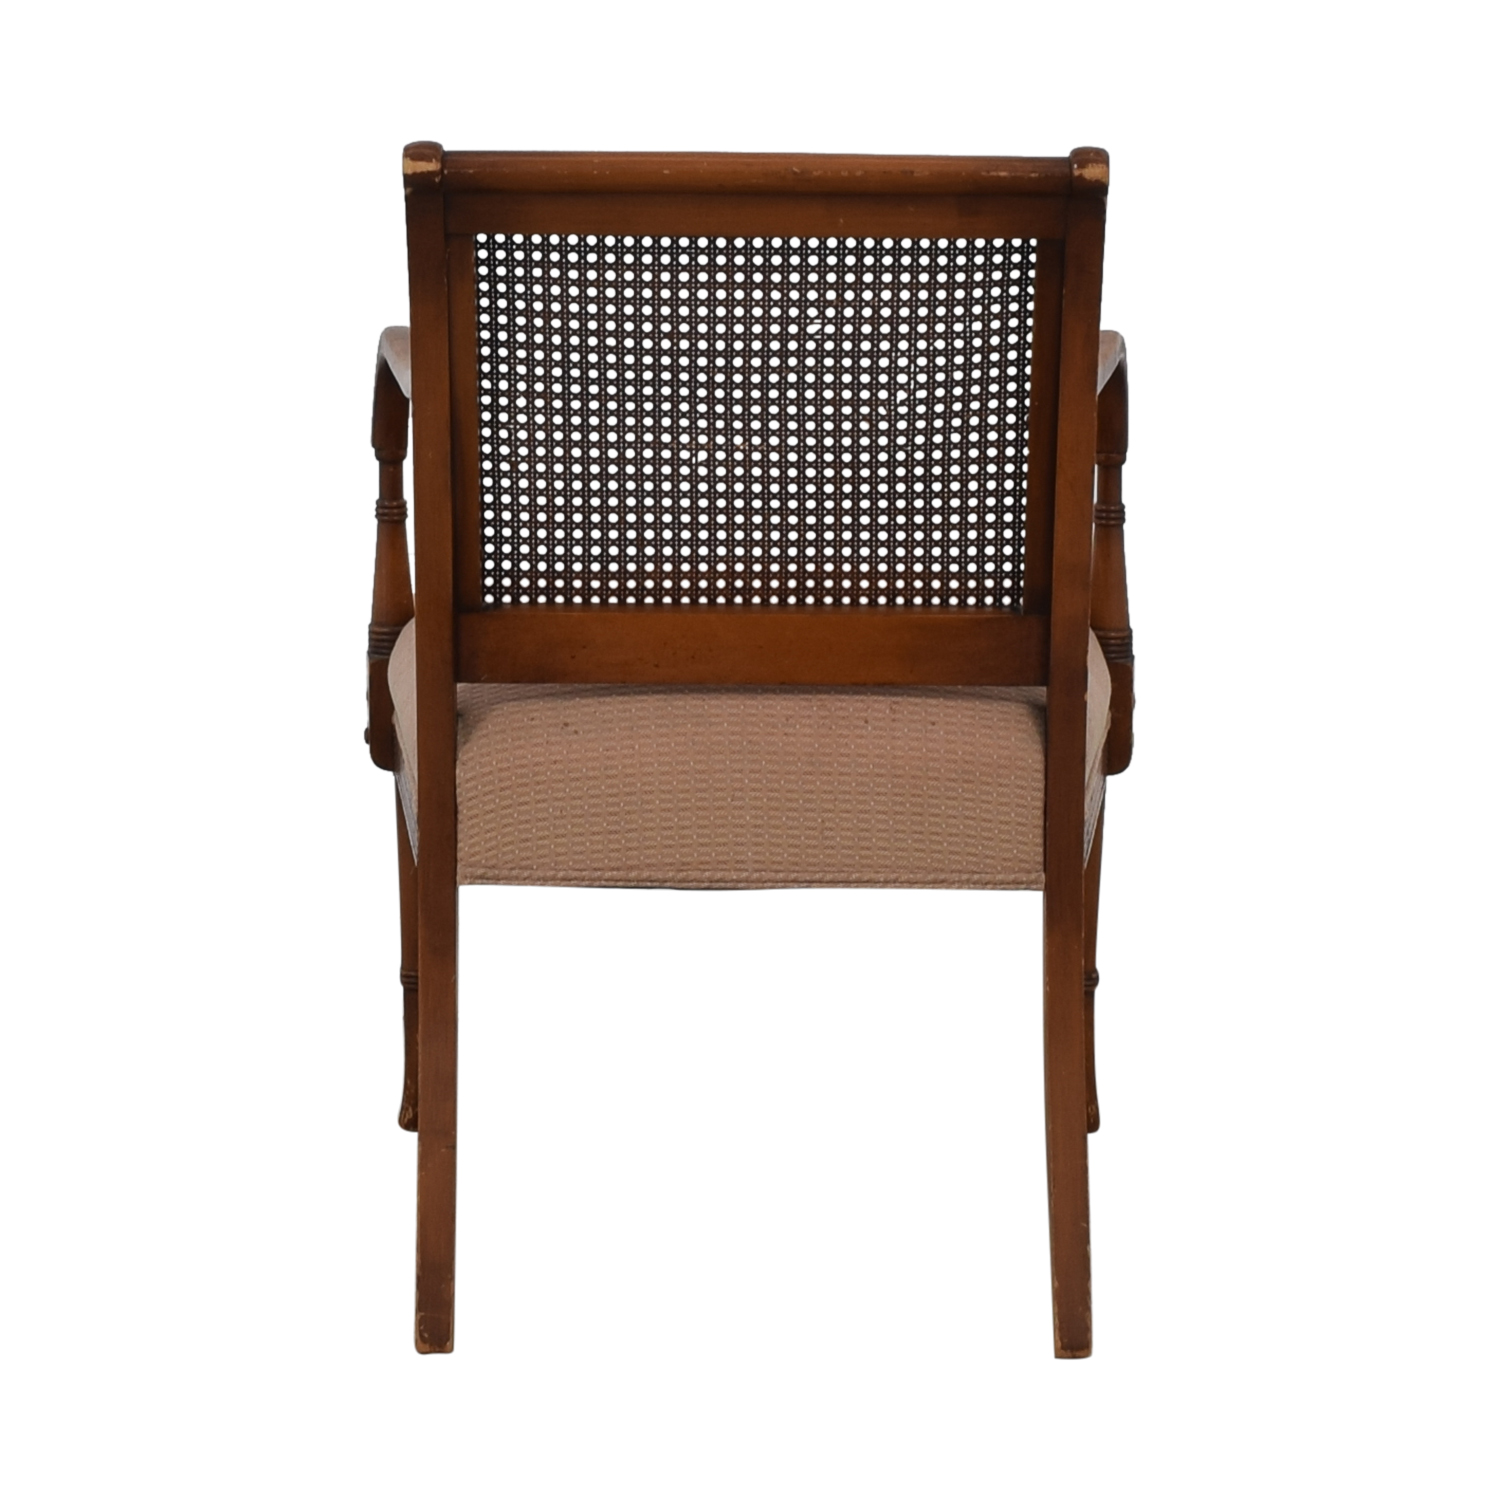 Vintage Rattan Arm Chair / Chairs